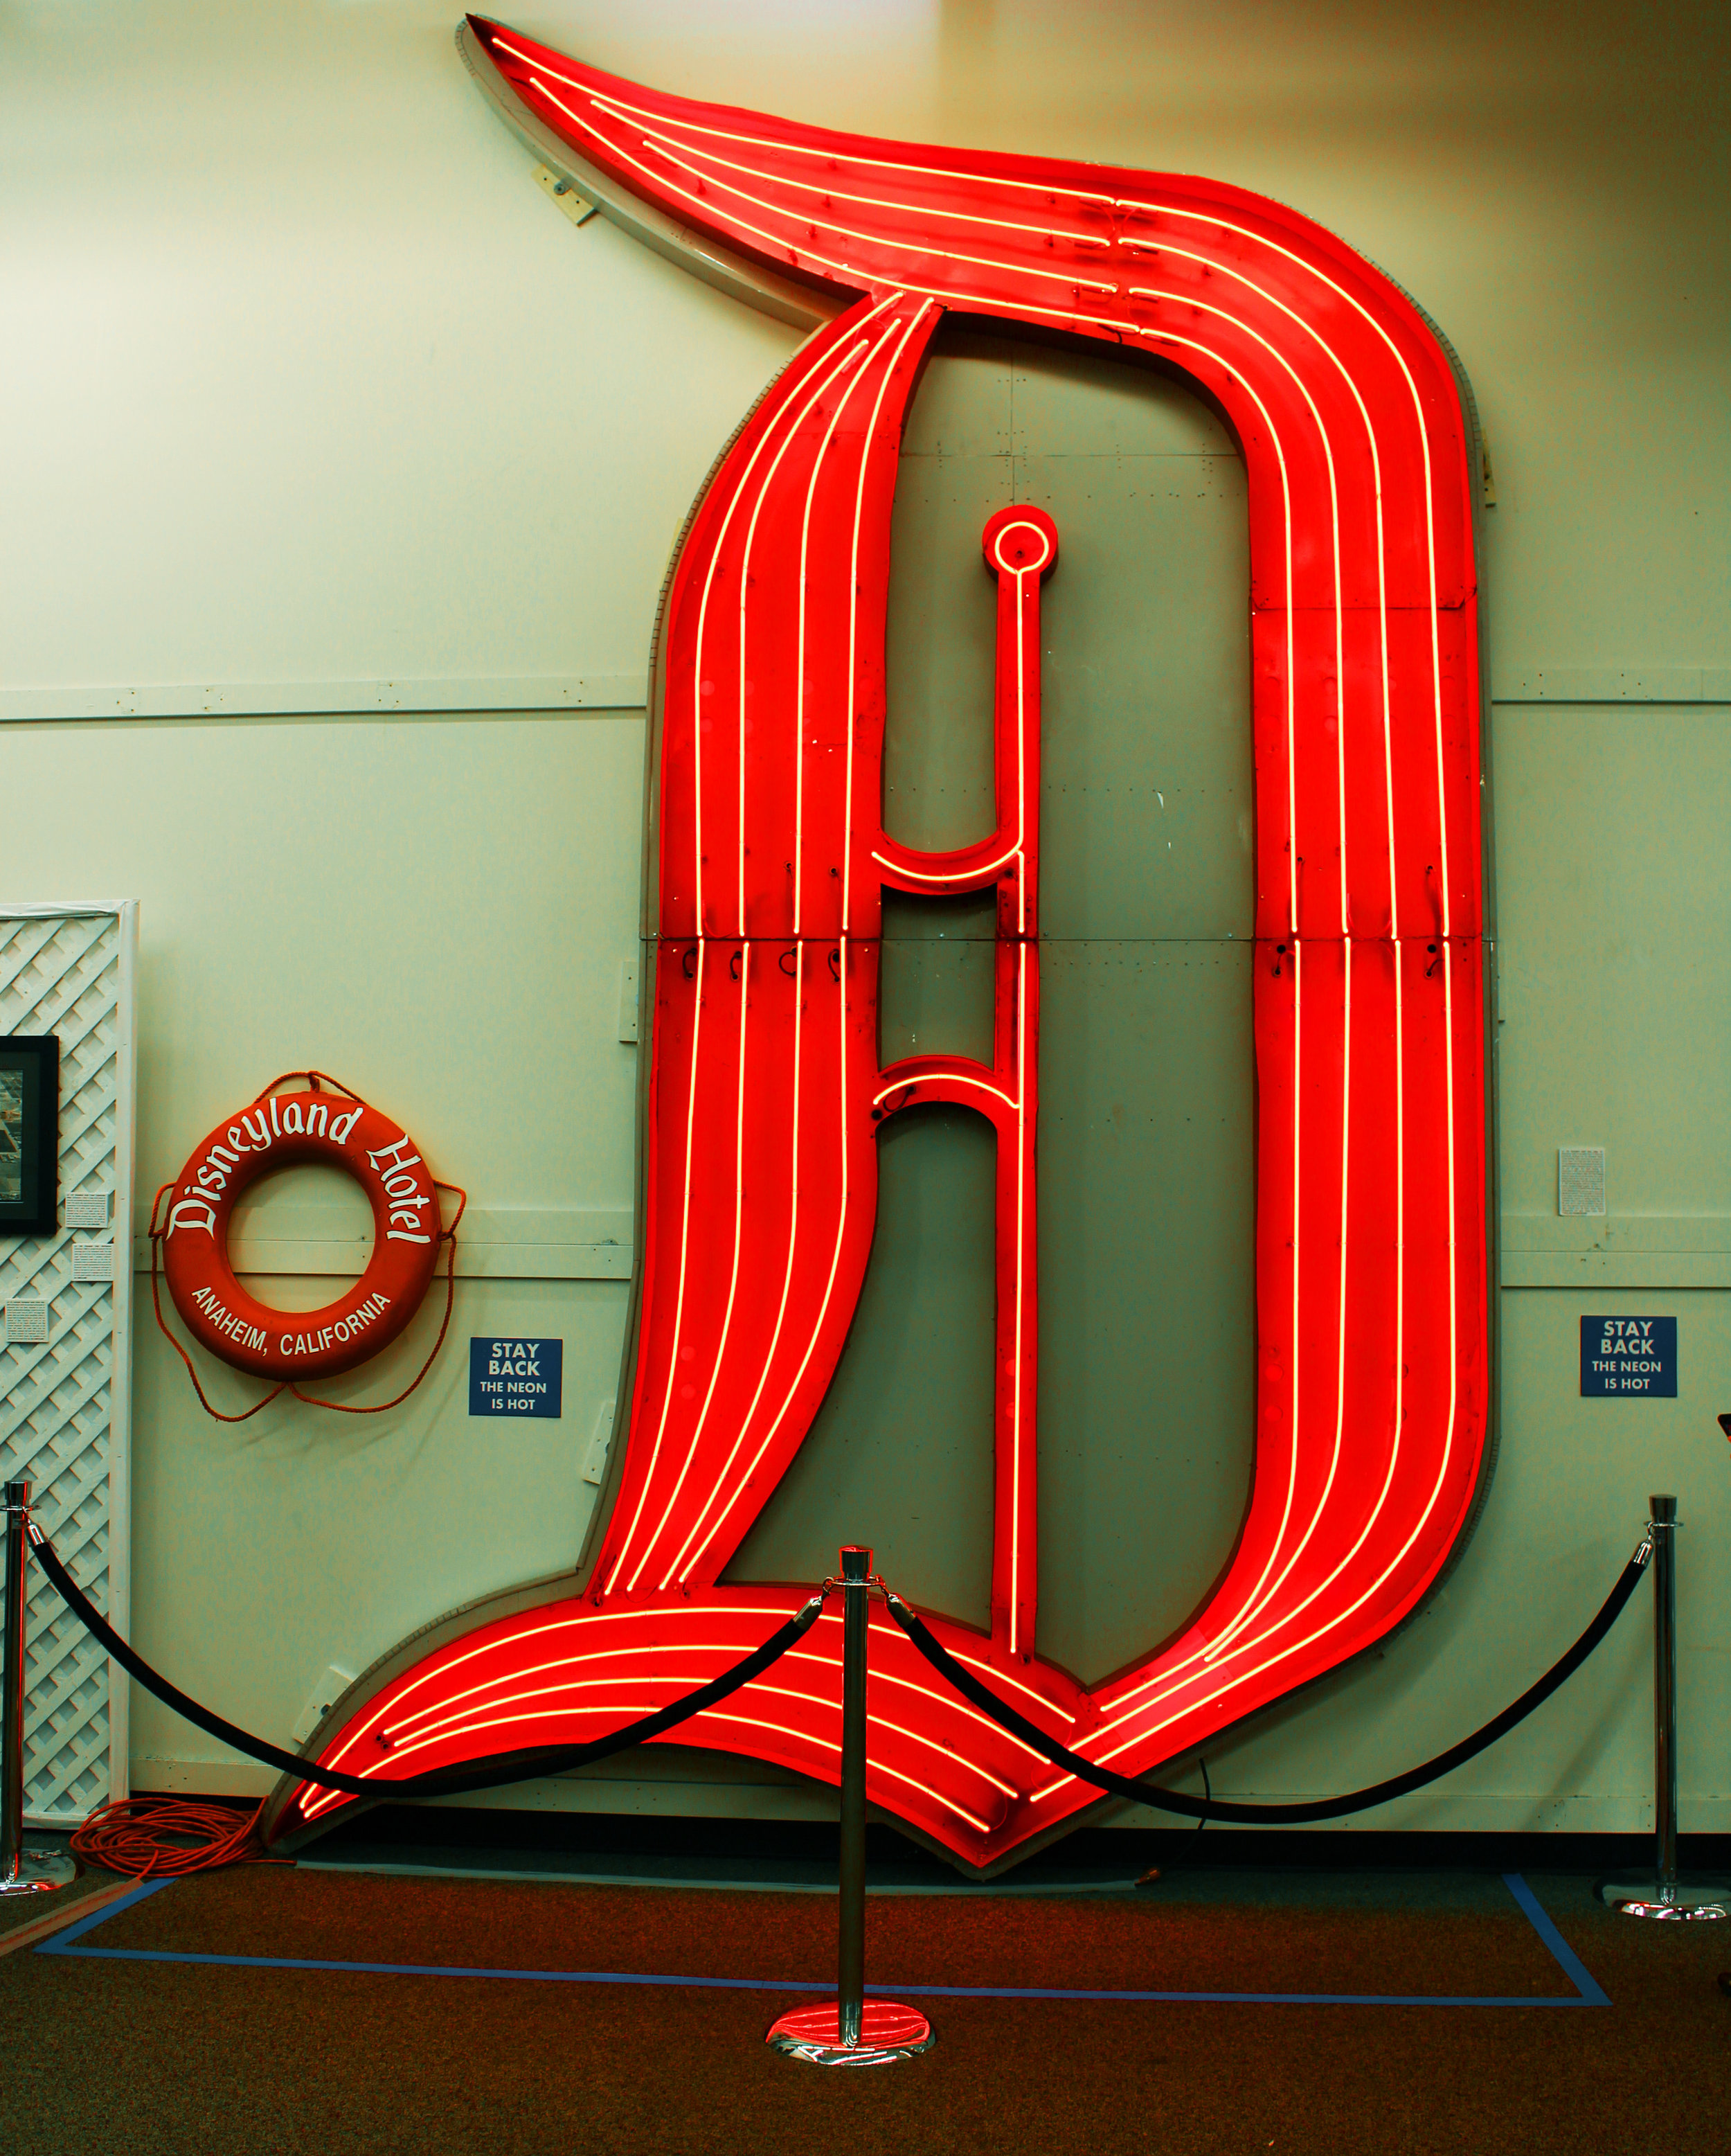 When Richard Kraft's family traveled to Disneyland, they couldn't afford to stay at the Disneyland Hotel. As an adult, Kraft ended up owning this neon D, displayed at the top of the Disneyland Hotel from 1963 to 1999. David Copperfield purchased the D for $75,000.